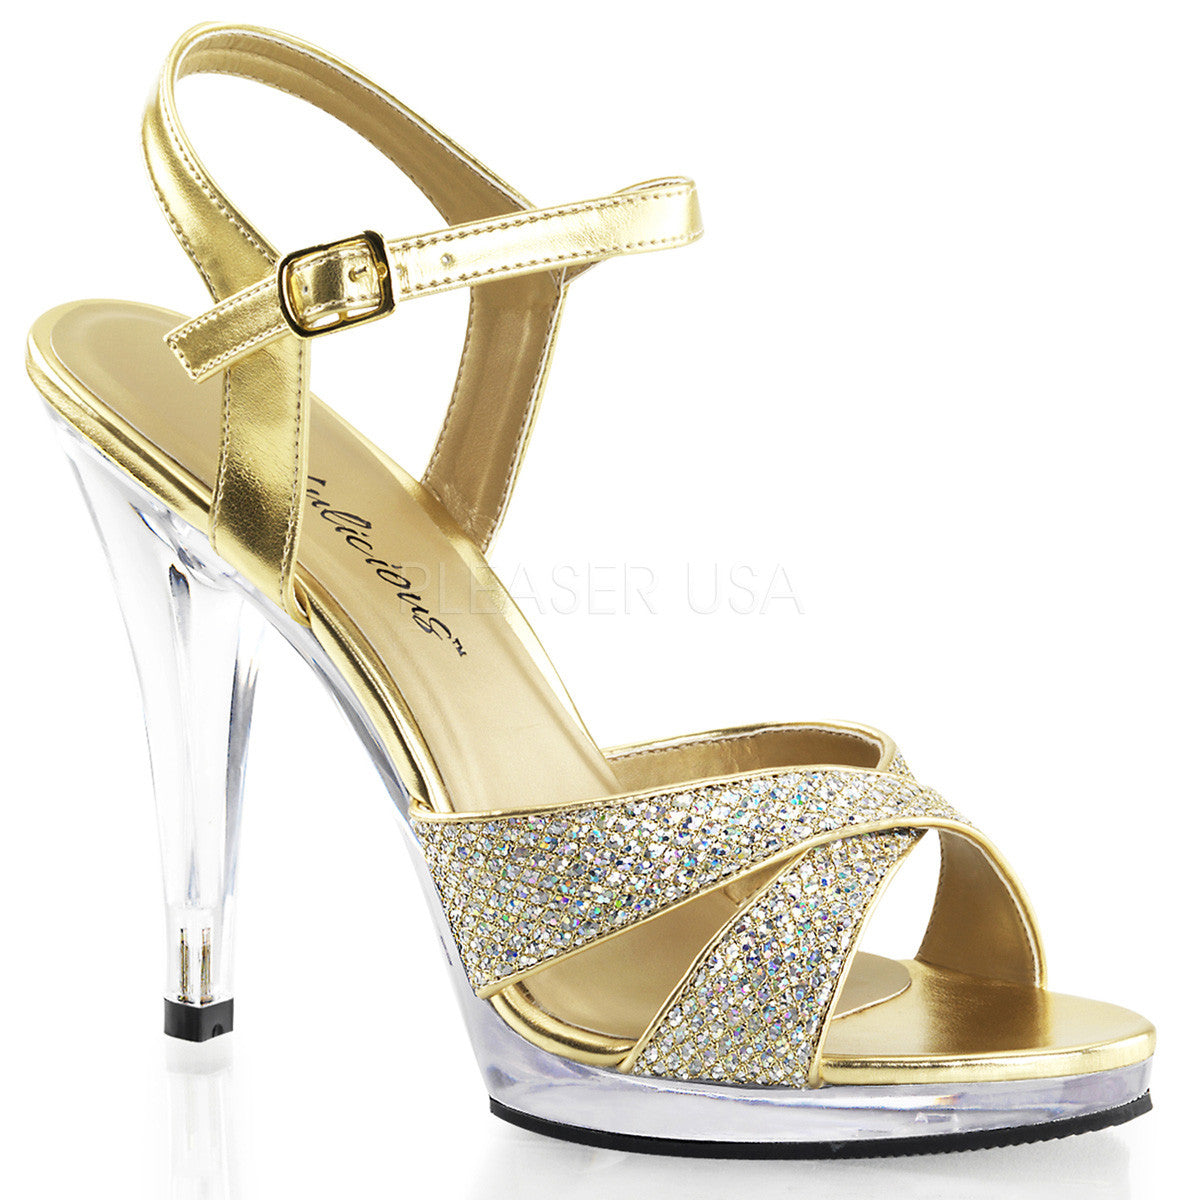 FABULICIOUS FLAIR-419(G) Gold Multi Glitter-Clear Ankle Strap Sandals - Shoecup.com